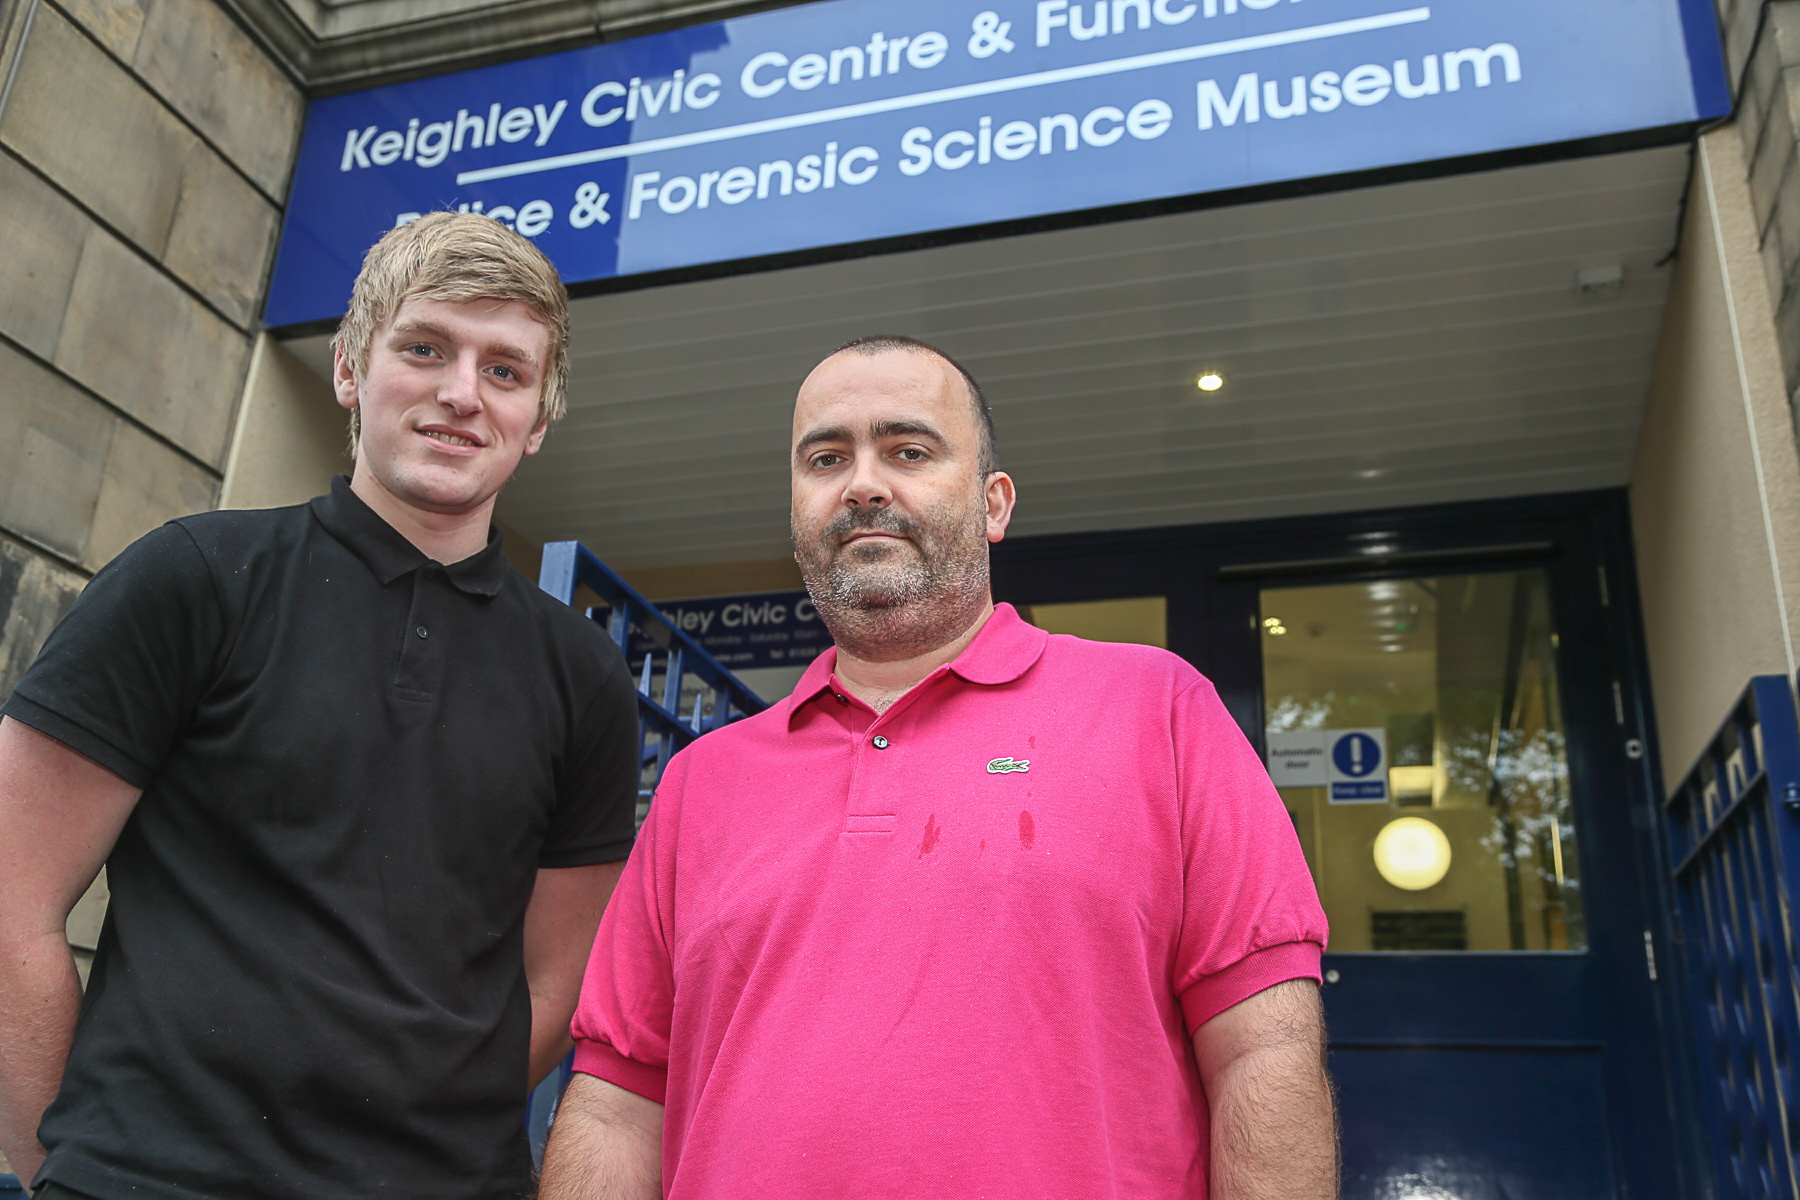 Gavin Farrar (right) with Wayne Hunnebell outside Keighley Civic Centre when Confianza moved out of the North Street building last year